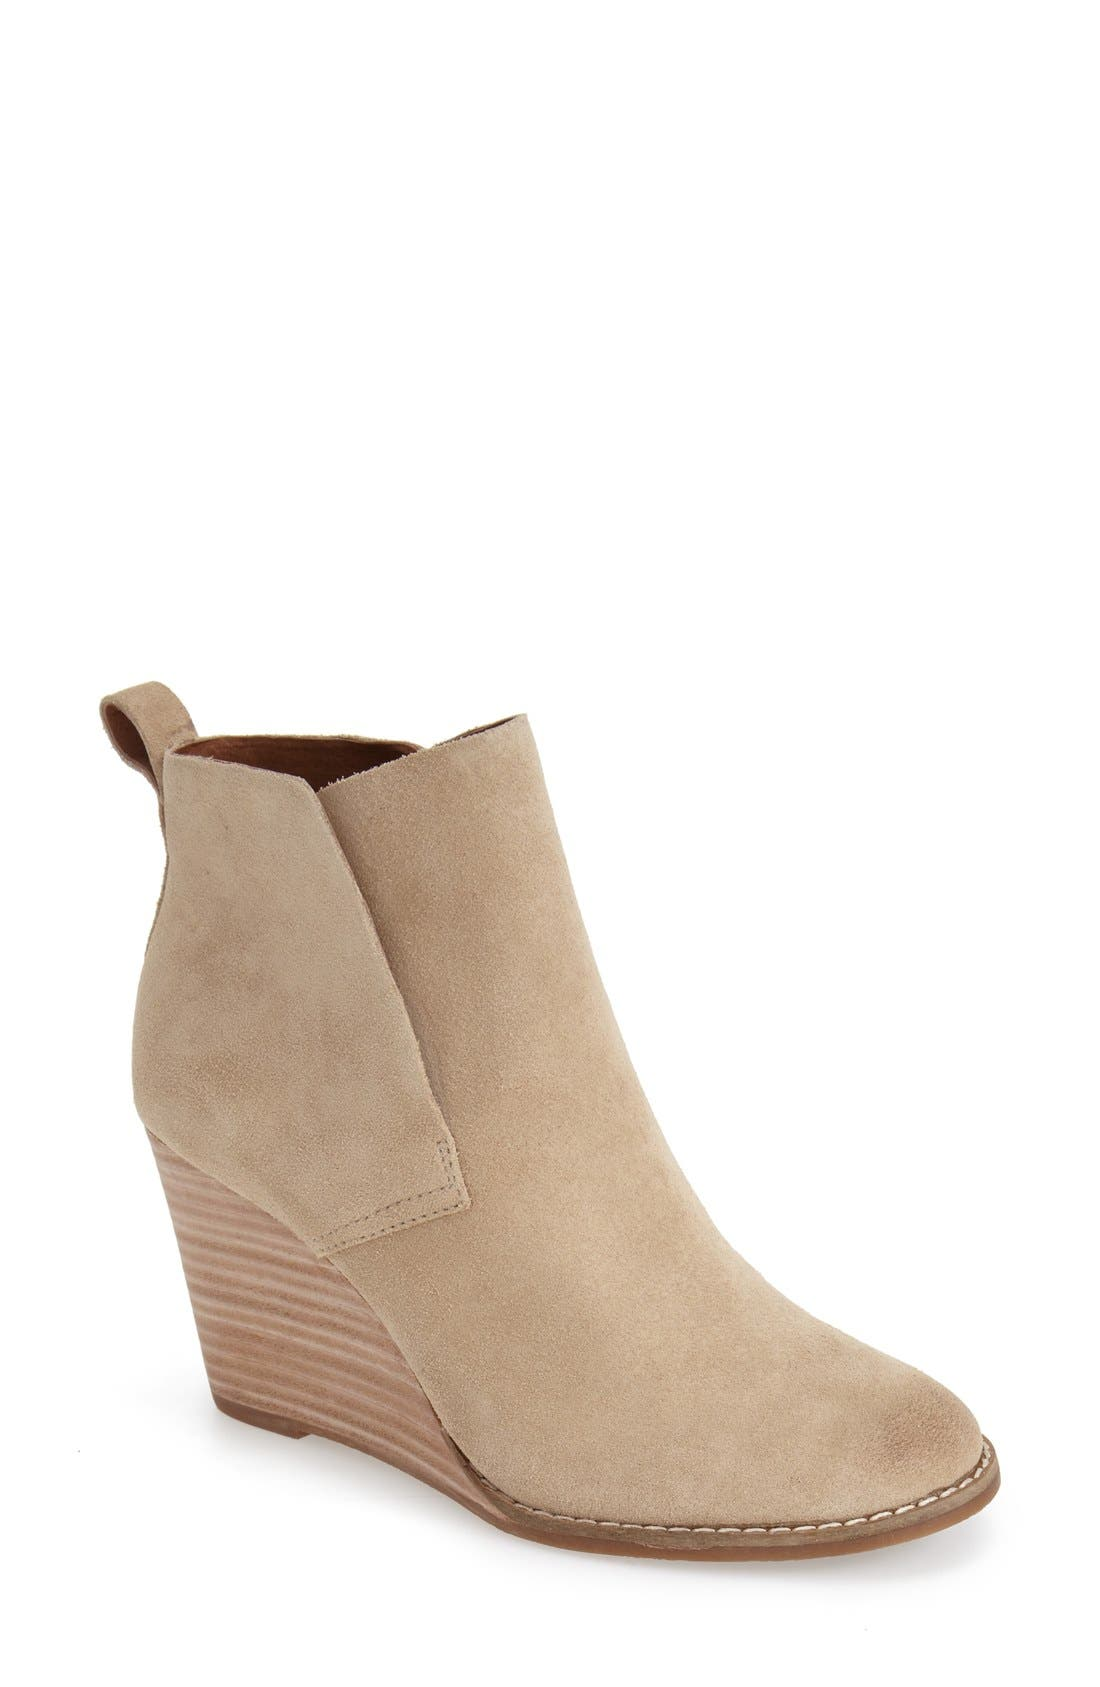 Alternate Image 1 Selected - Lucky Brand 'Yoniana' Wedge Bootie (Women)